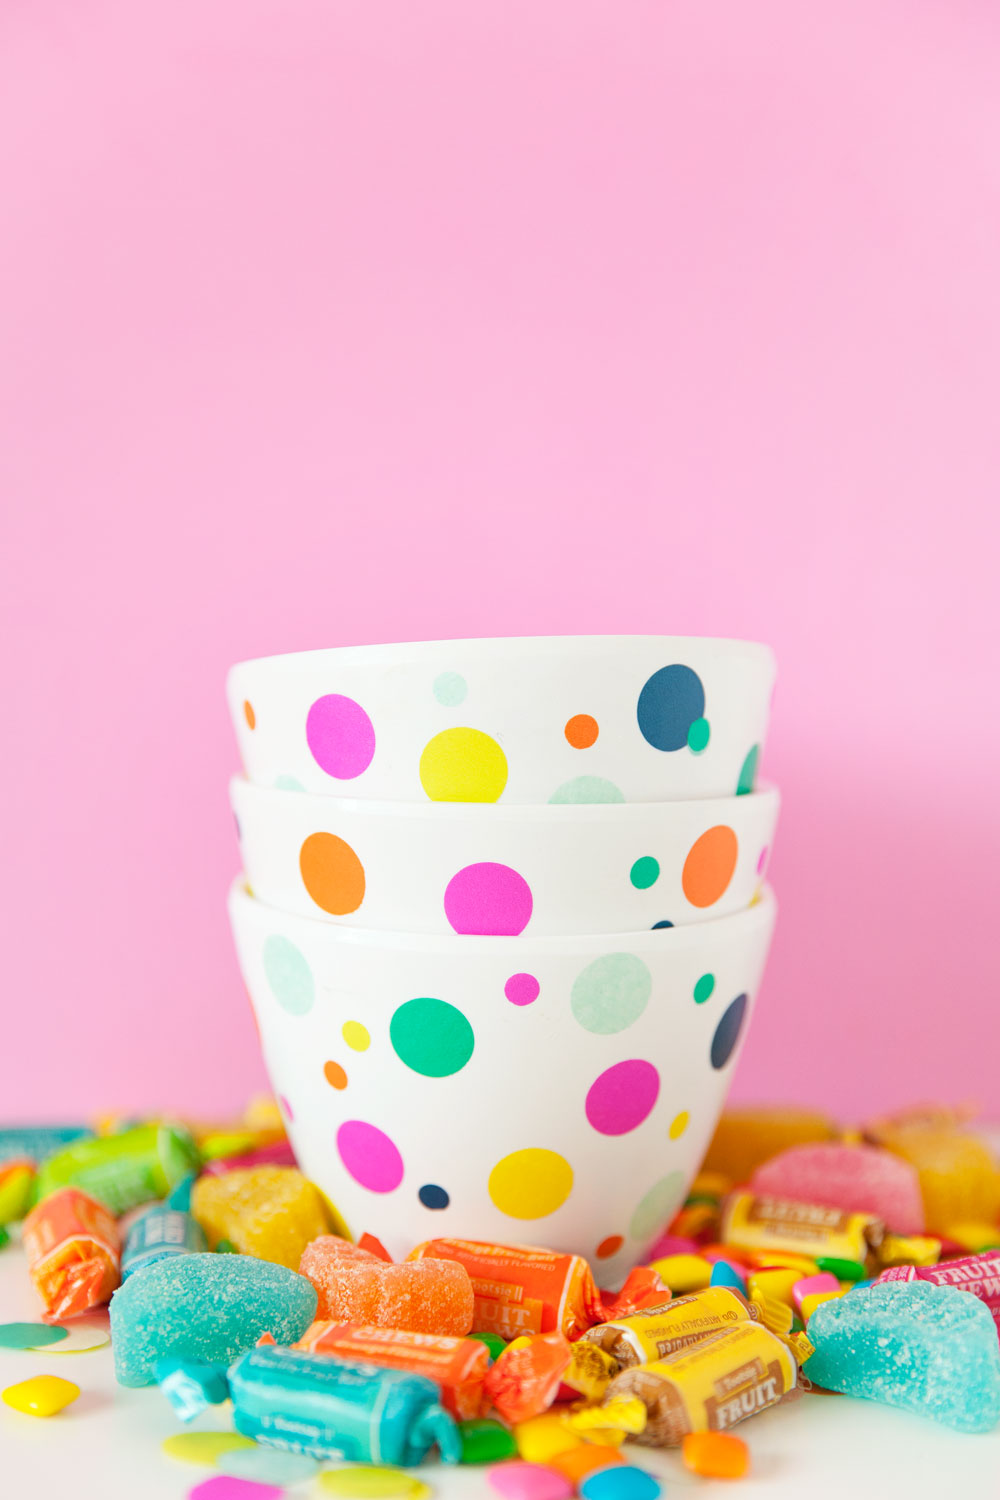 These-cute-DIY-confetti-candy-dishes-are-so-cute-and-only-takes-15-min-to-make-